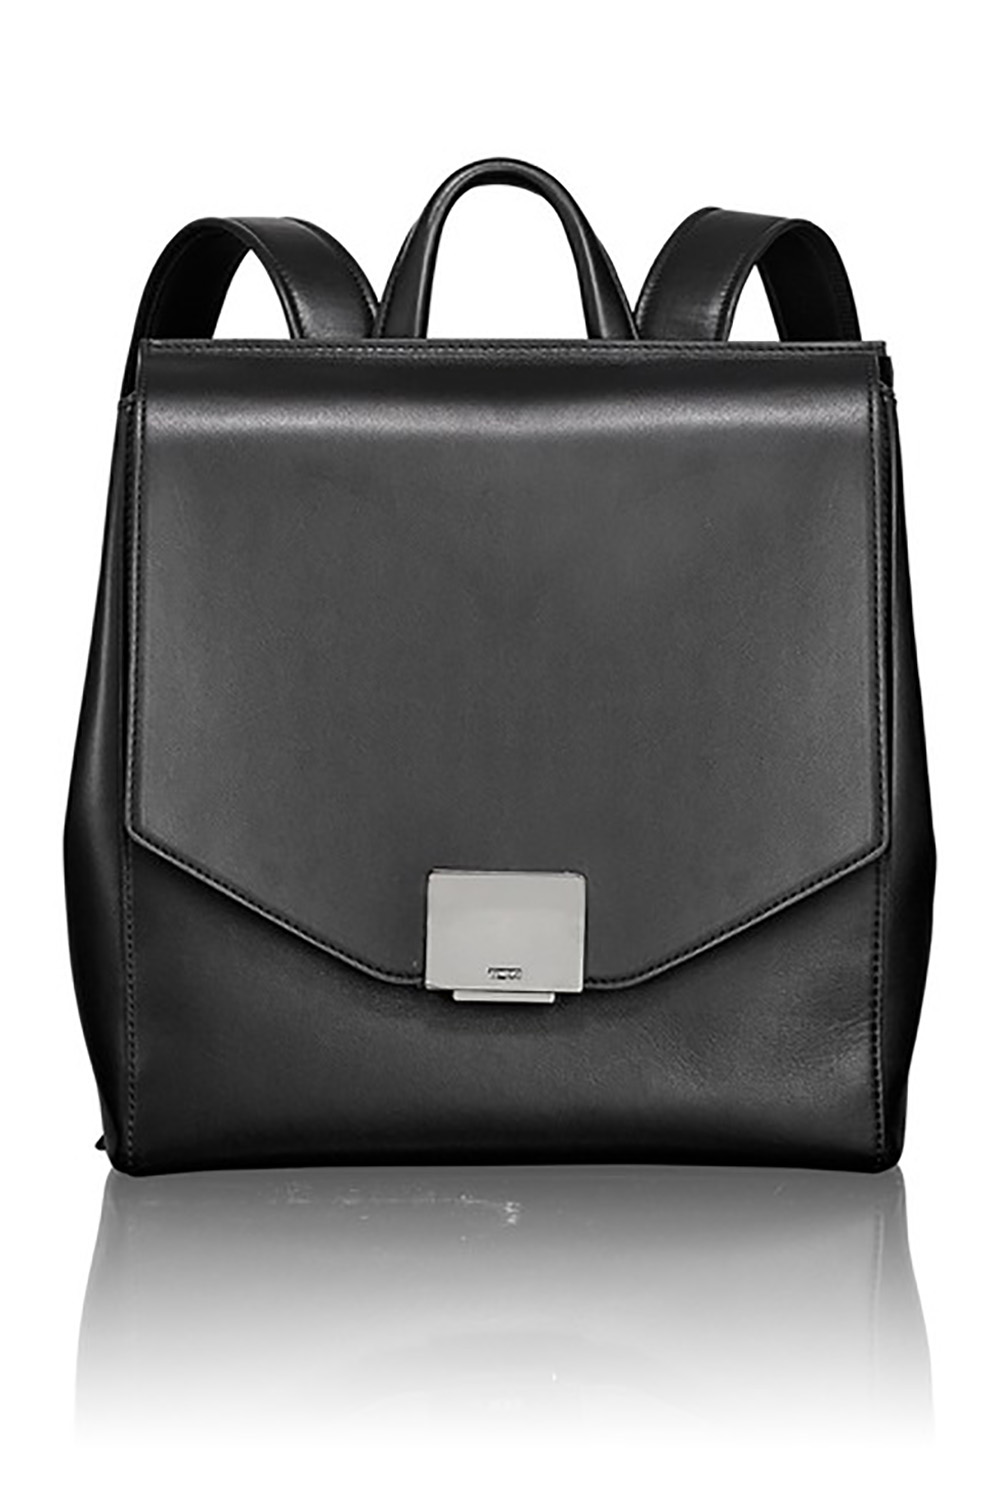 Dozens of Tumi bags are 40% off right now at Nordstrom Rack — but not for long